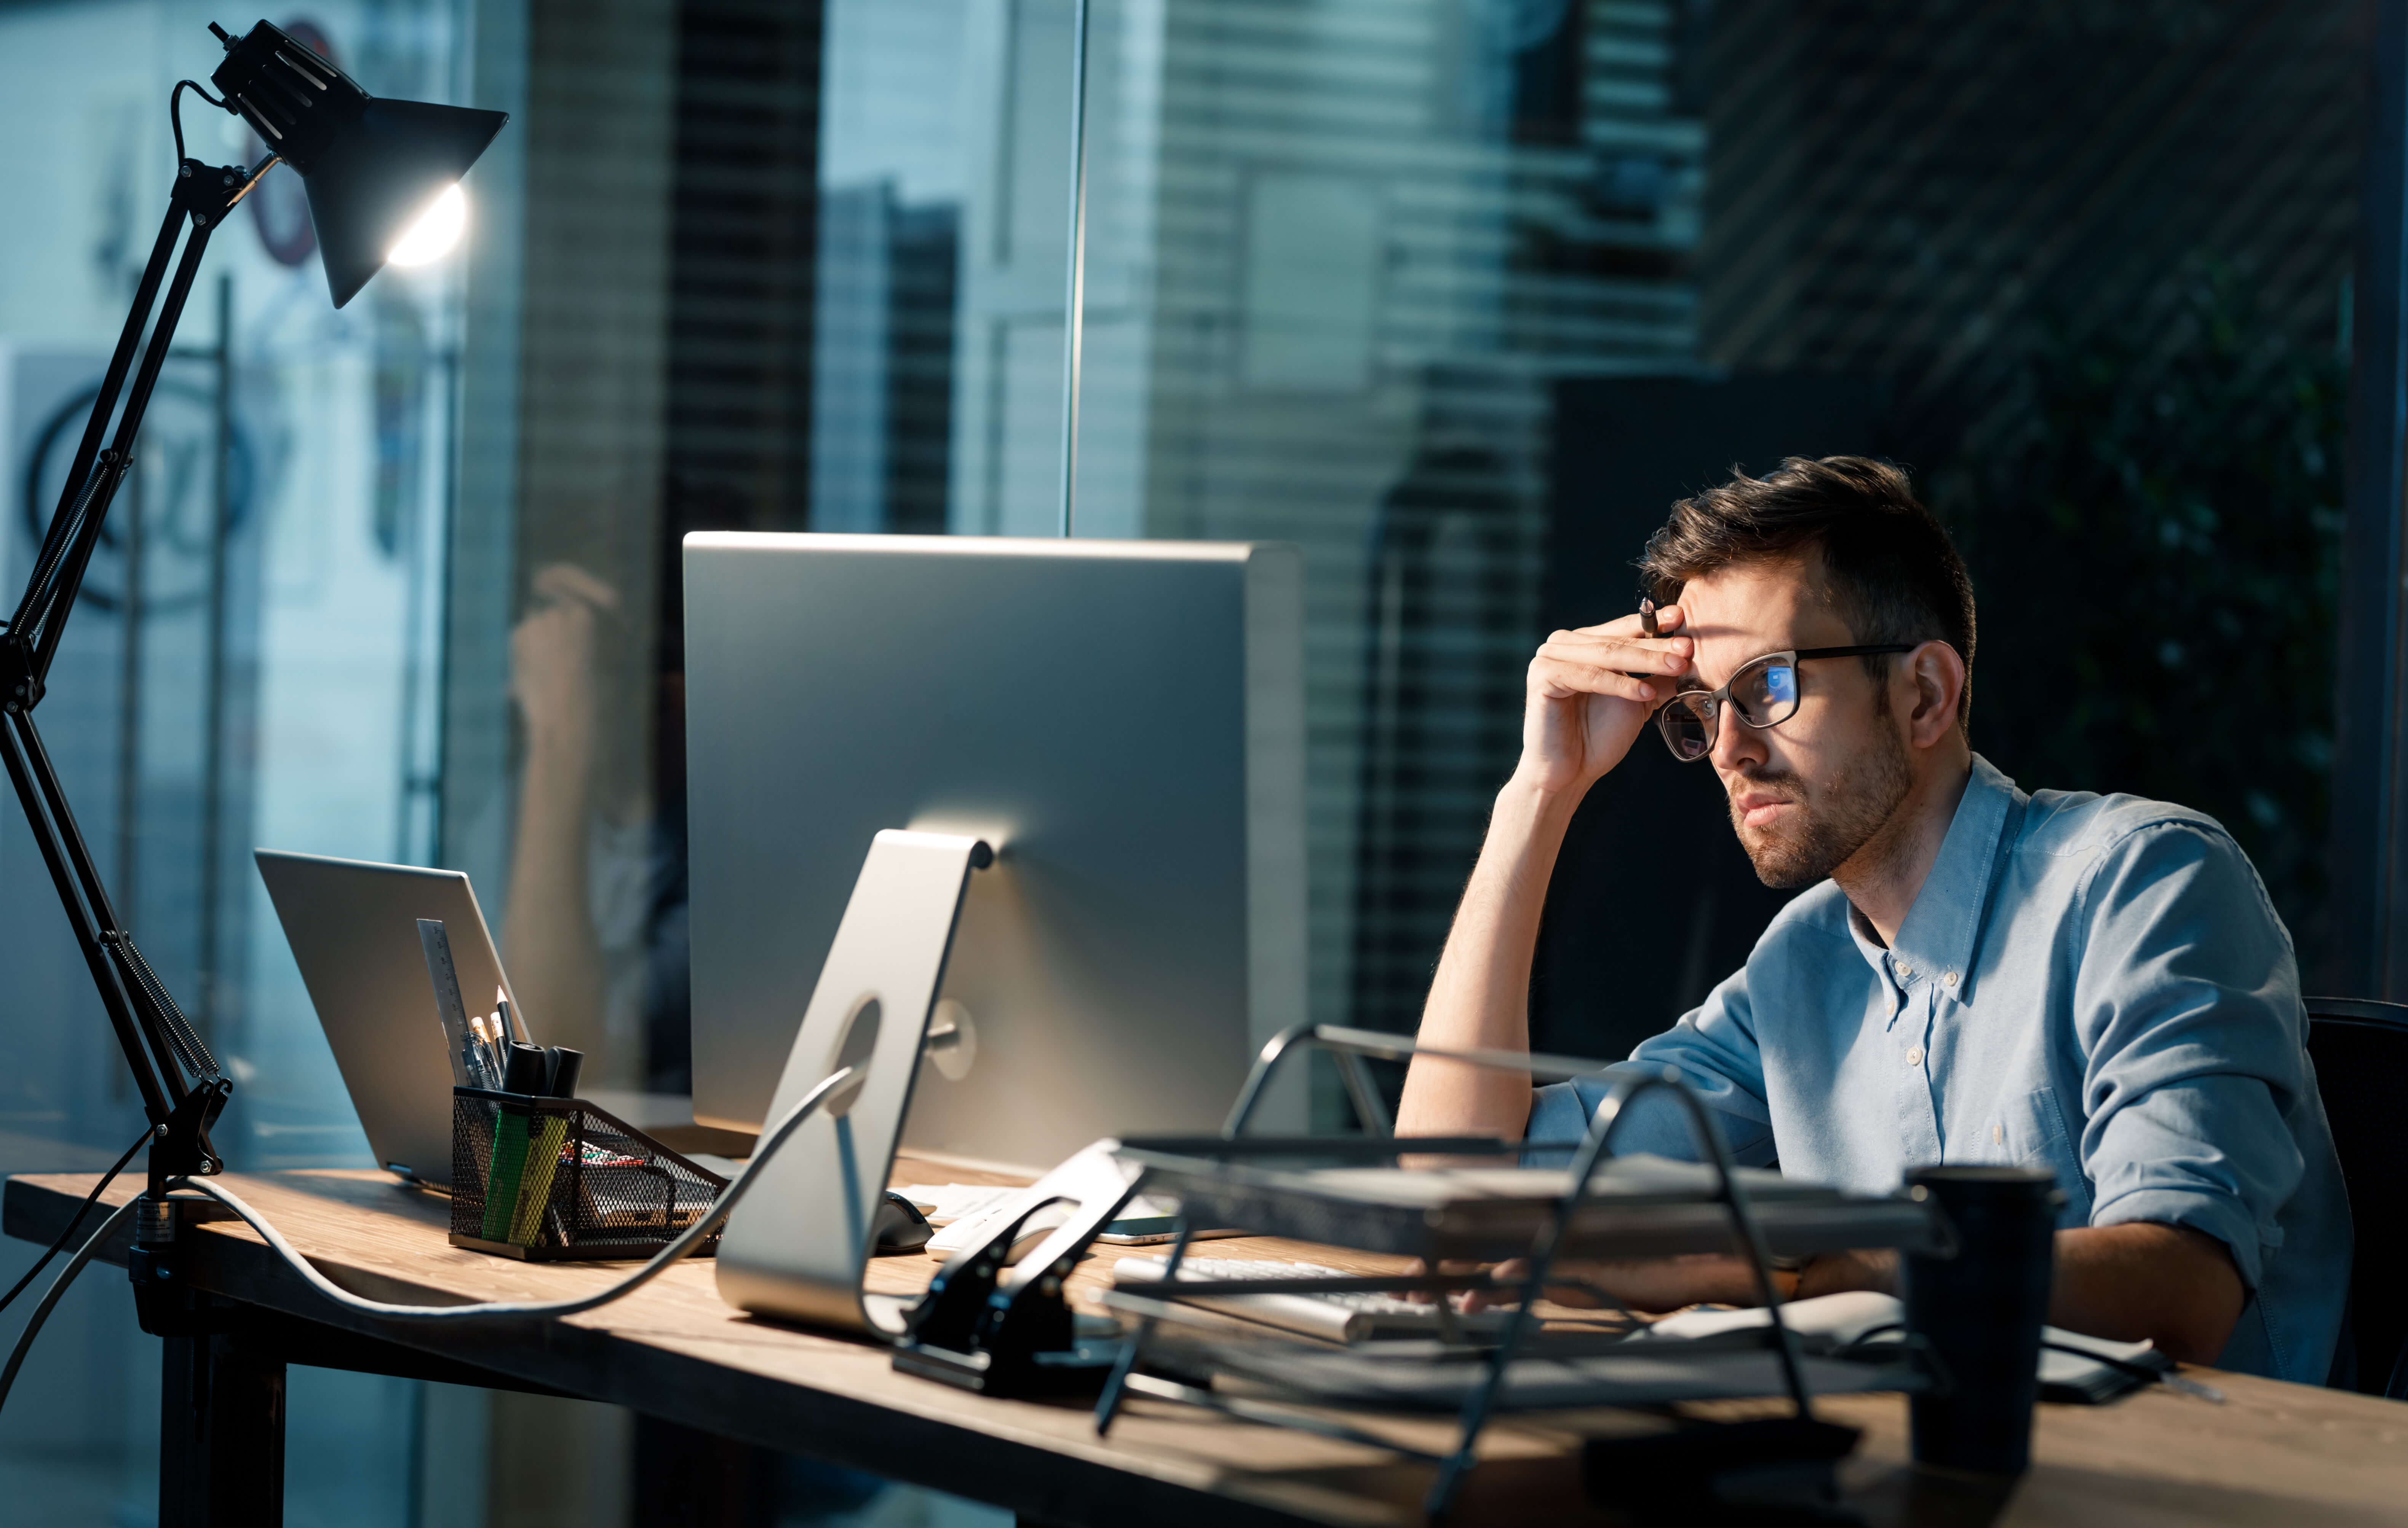 Organizations are increasingly kept on their toes as a cybersecurity breach could spell the loss of consumer trust, increased scrutiny from regulators and massive economic damage. Source: Shutterstock